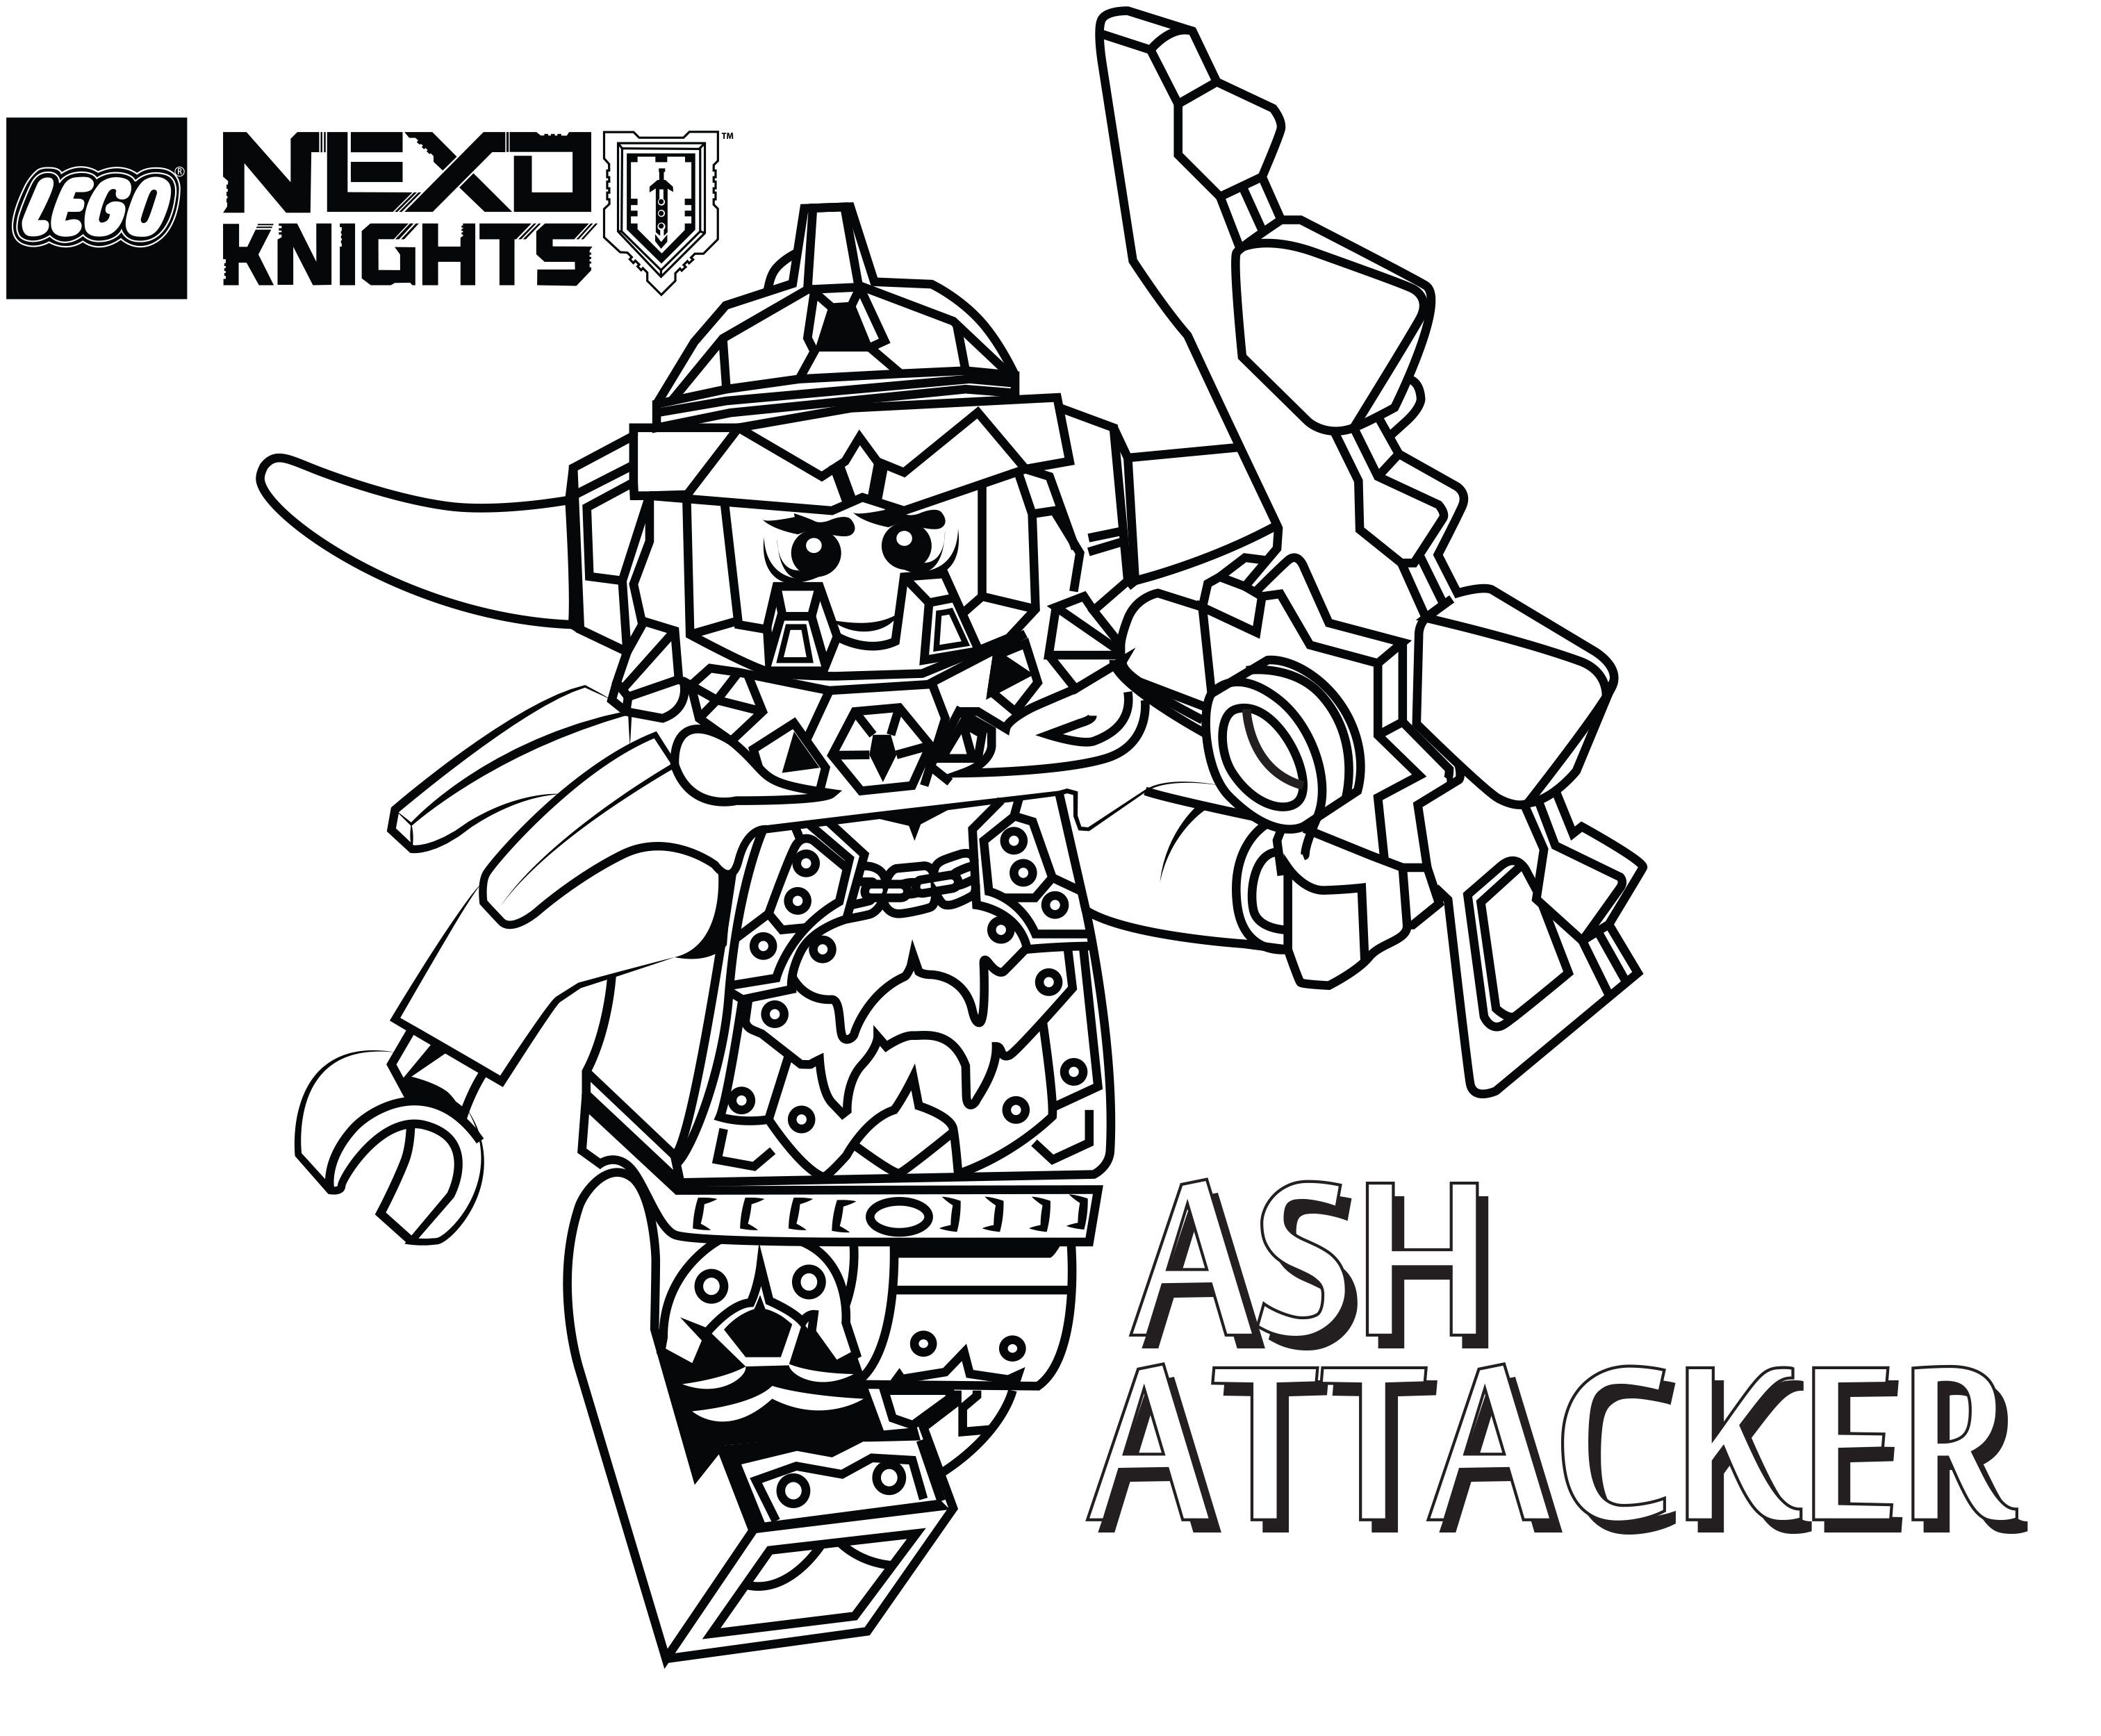 3024x2499 Lego Nexo Knights Coloring Pages Free Printable Lego Nexo